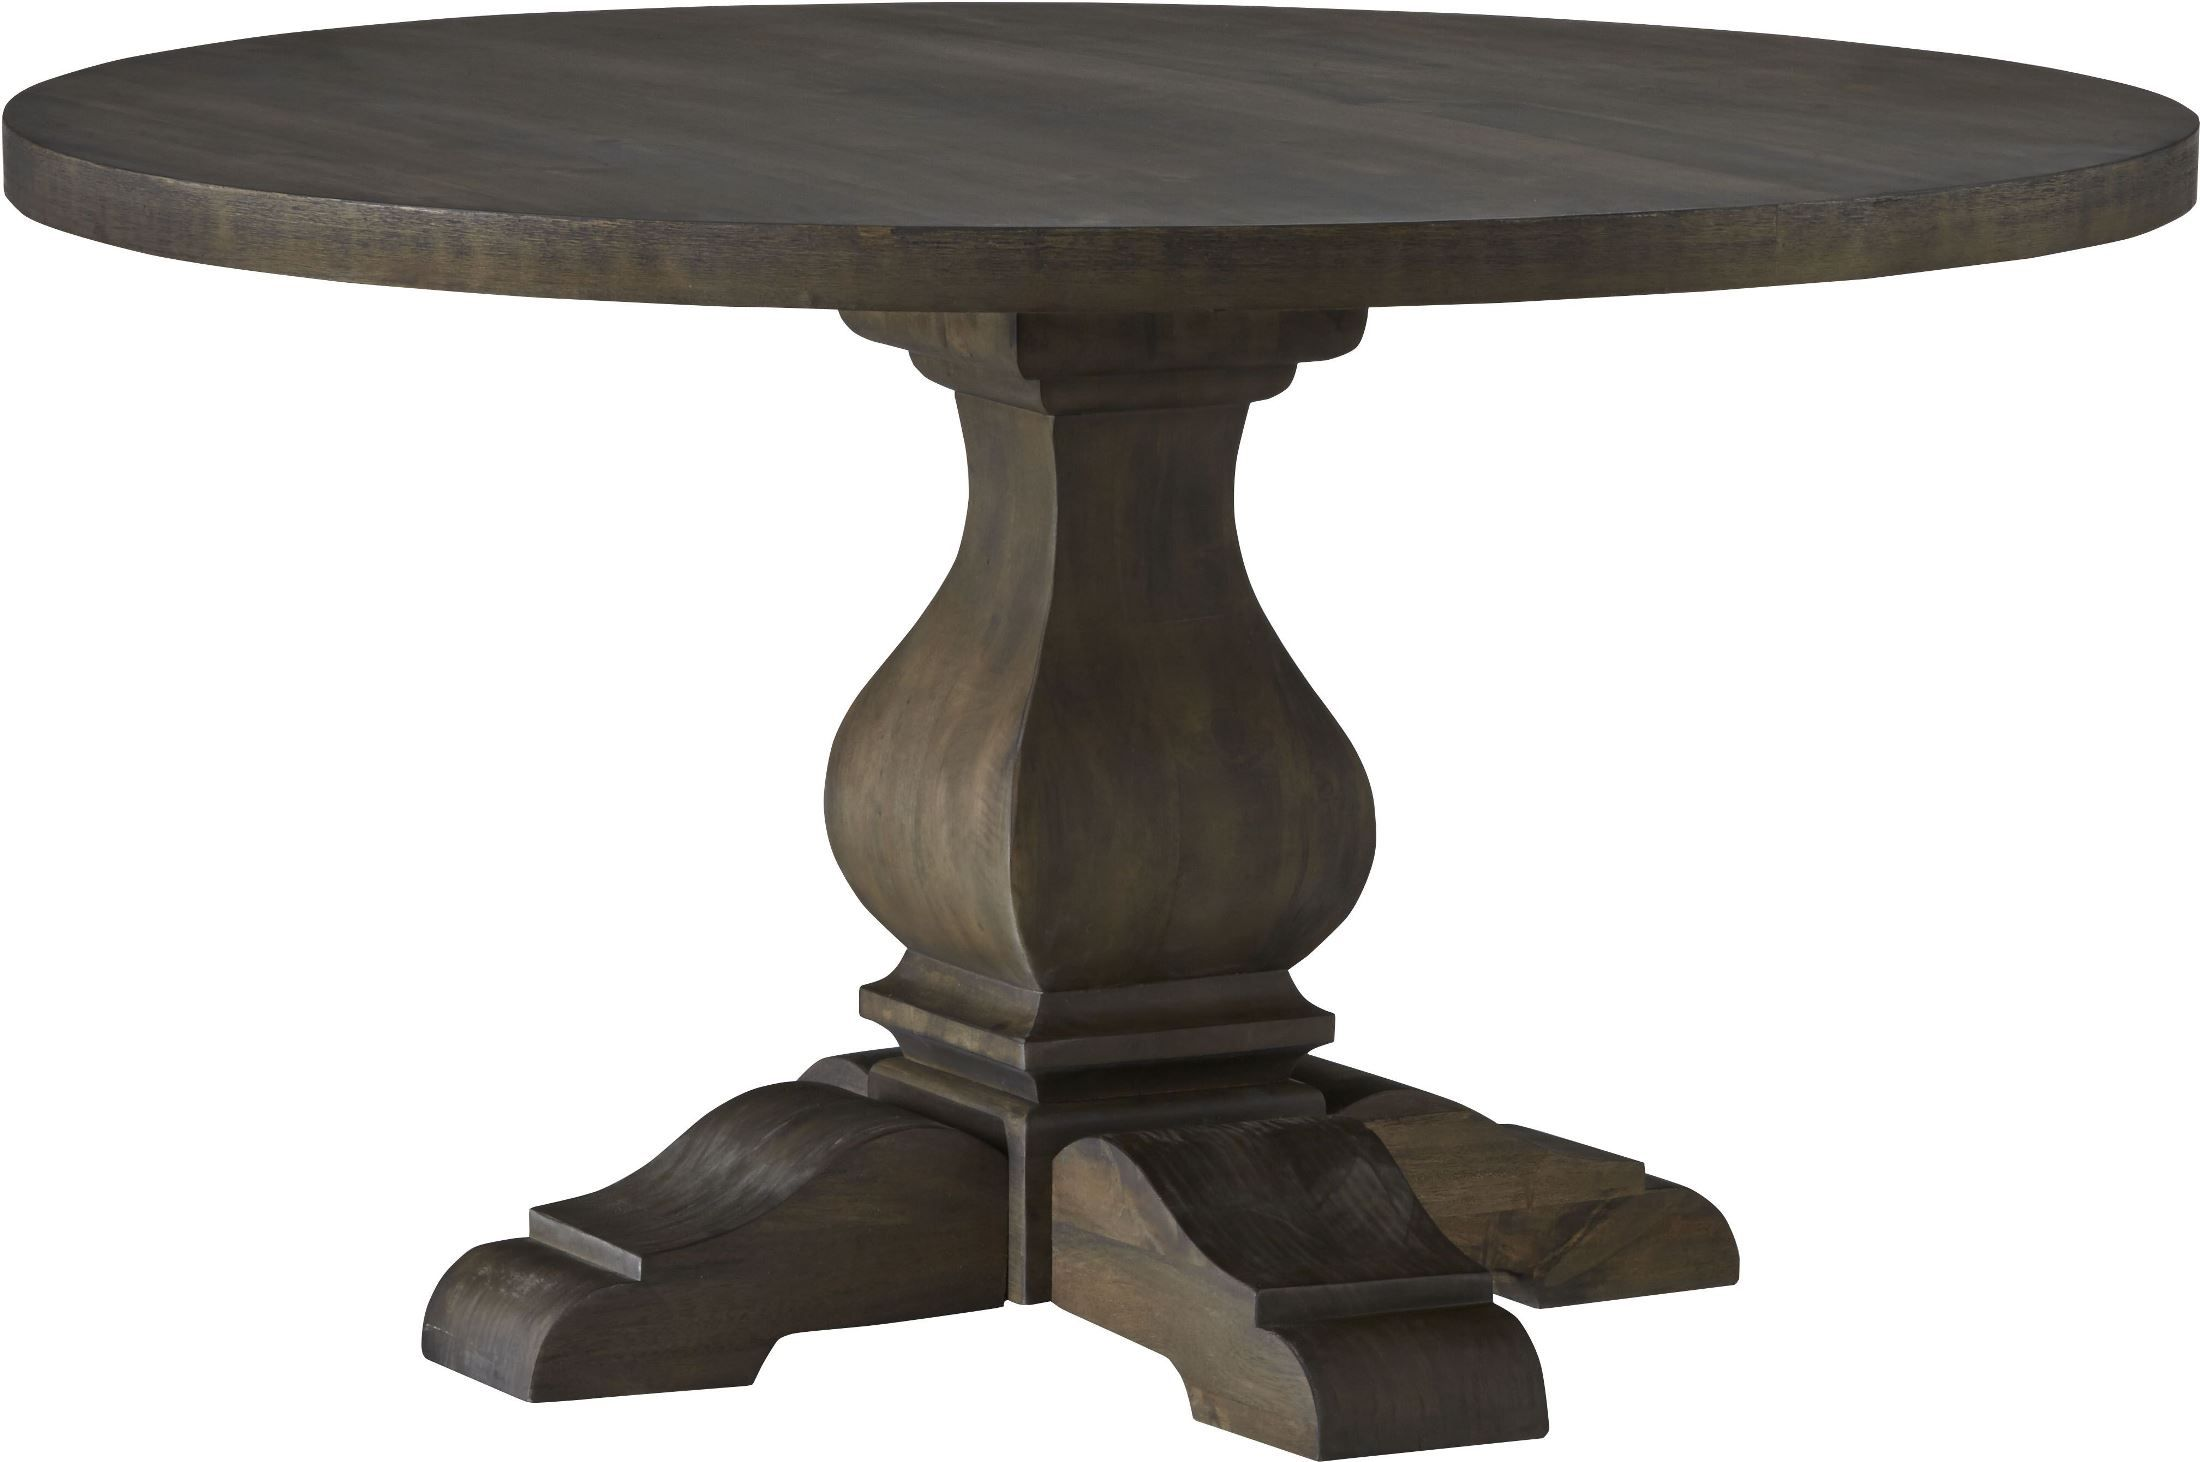 Trudell Dark Brown Round Extendable Pedestal Dining Table From Ashley D658 50t 50b Cole Round Pedestal Dining Table Pedestal Dining Table Round Dining Room